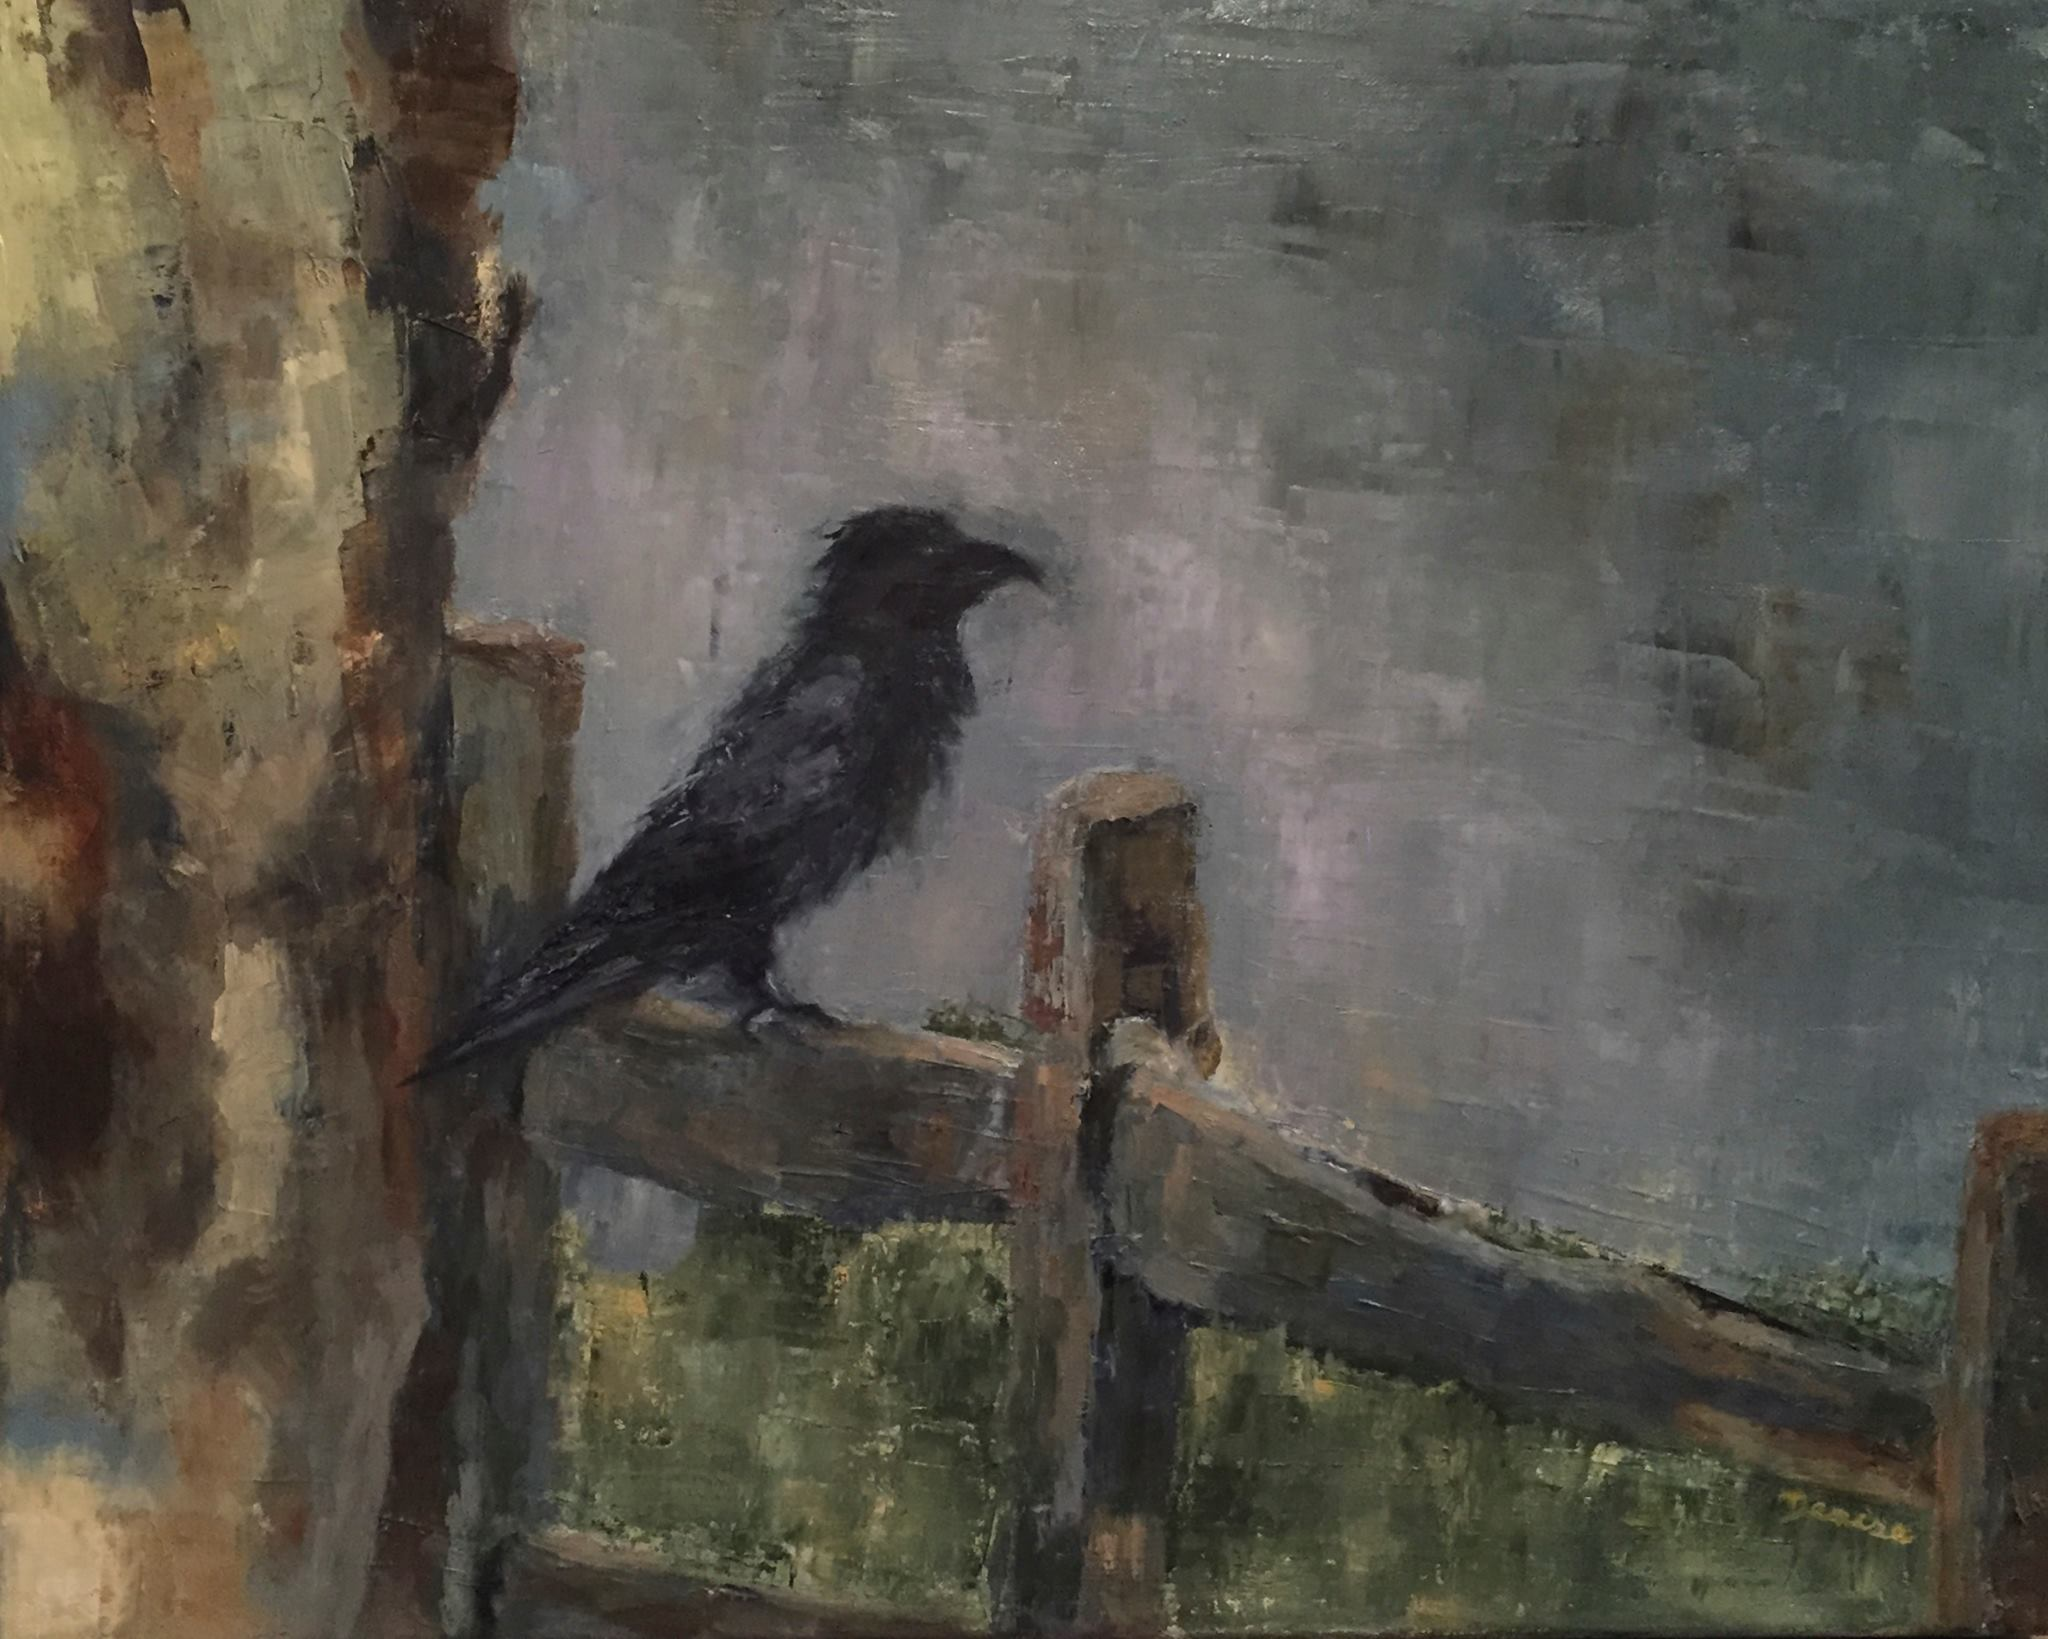 On the Fence, Oil on Canvas, 16 x 20, SOLD